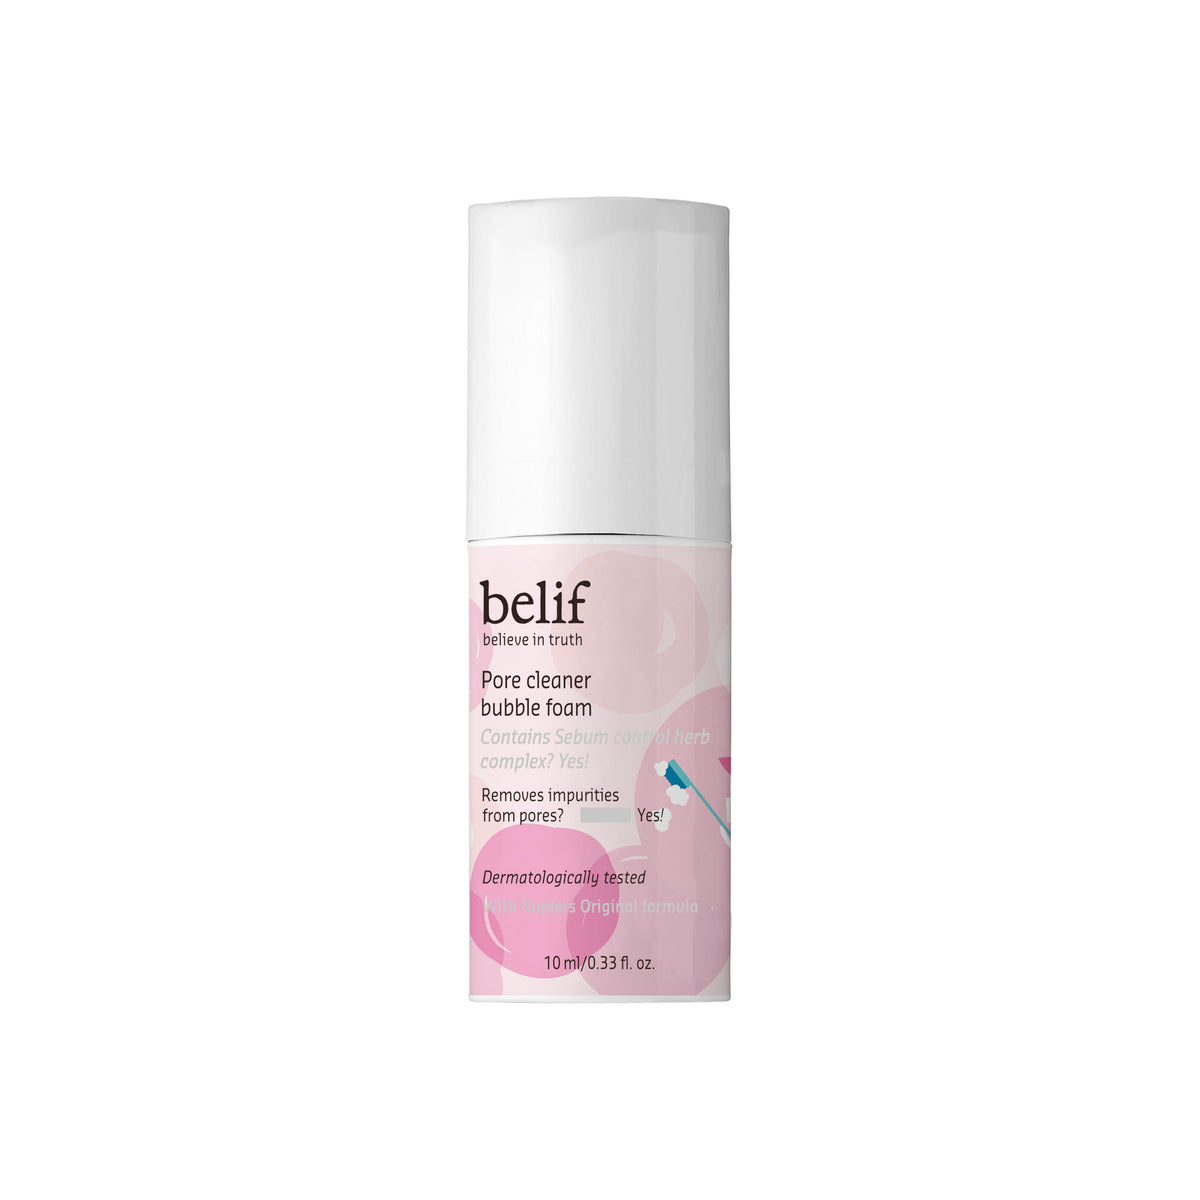 Belif Pore Cleaner Bubble Foam 10ml